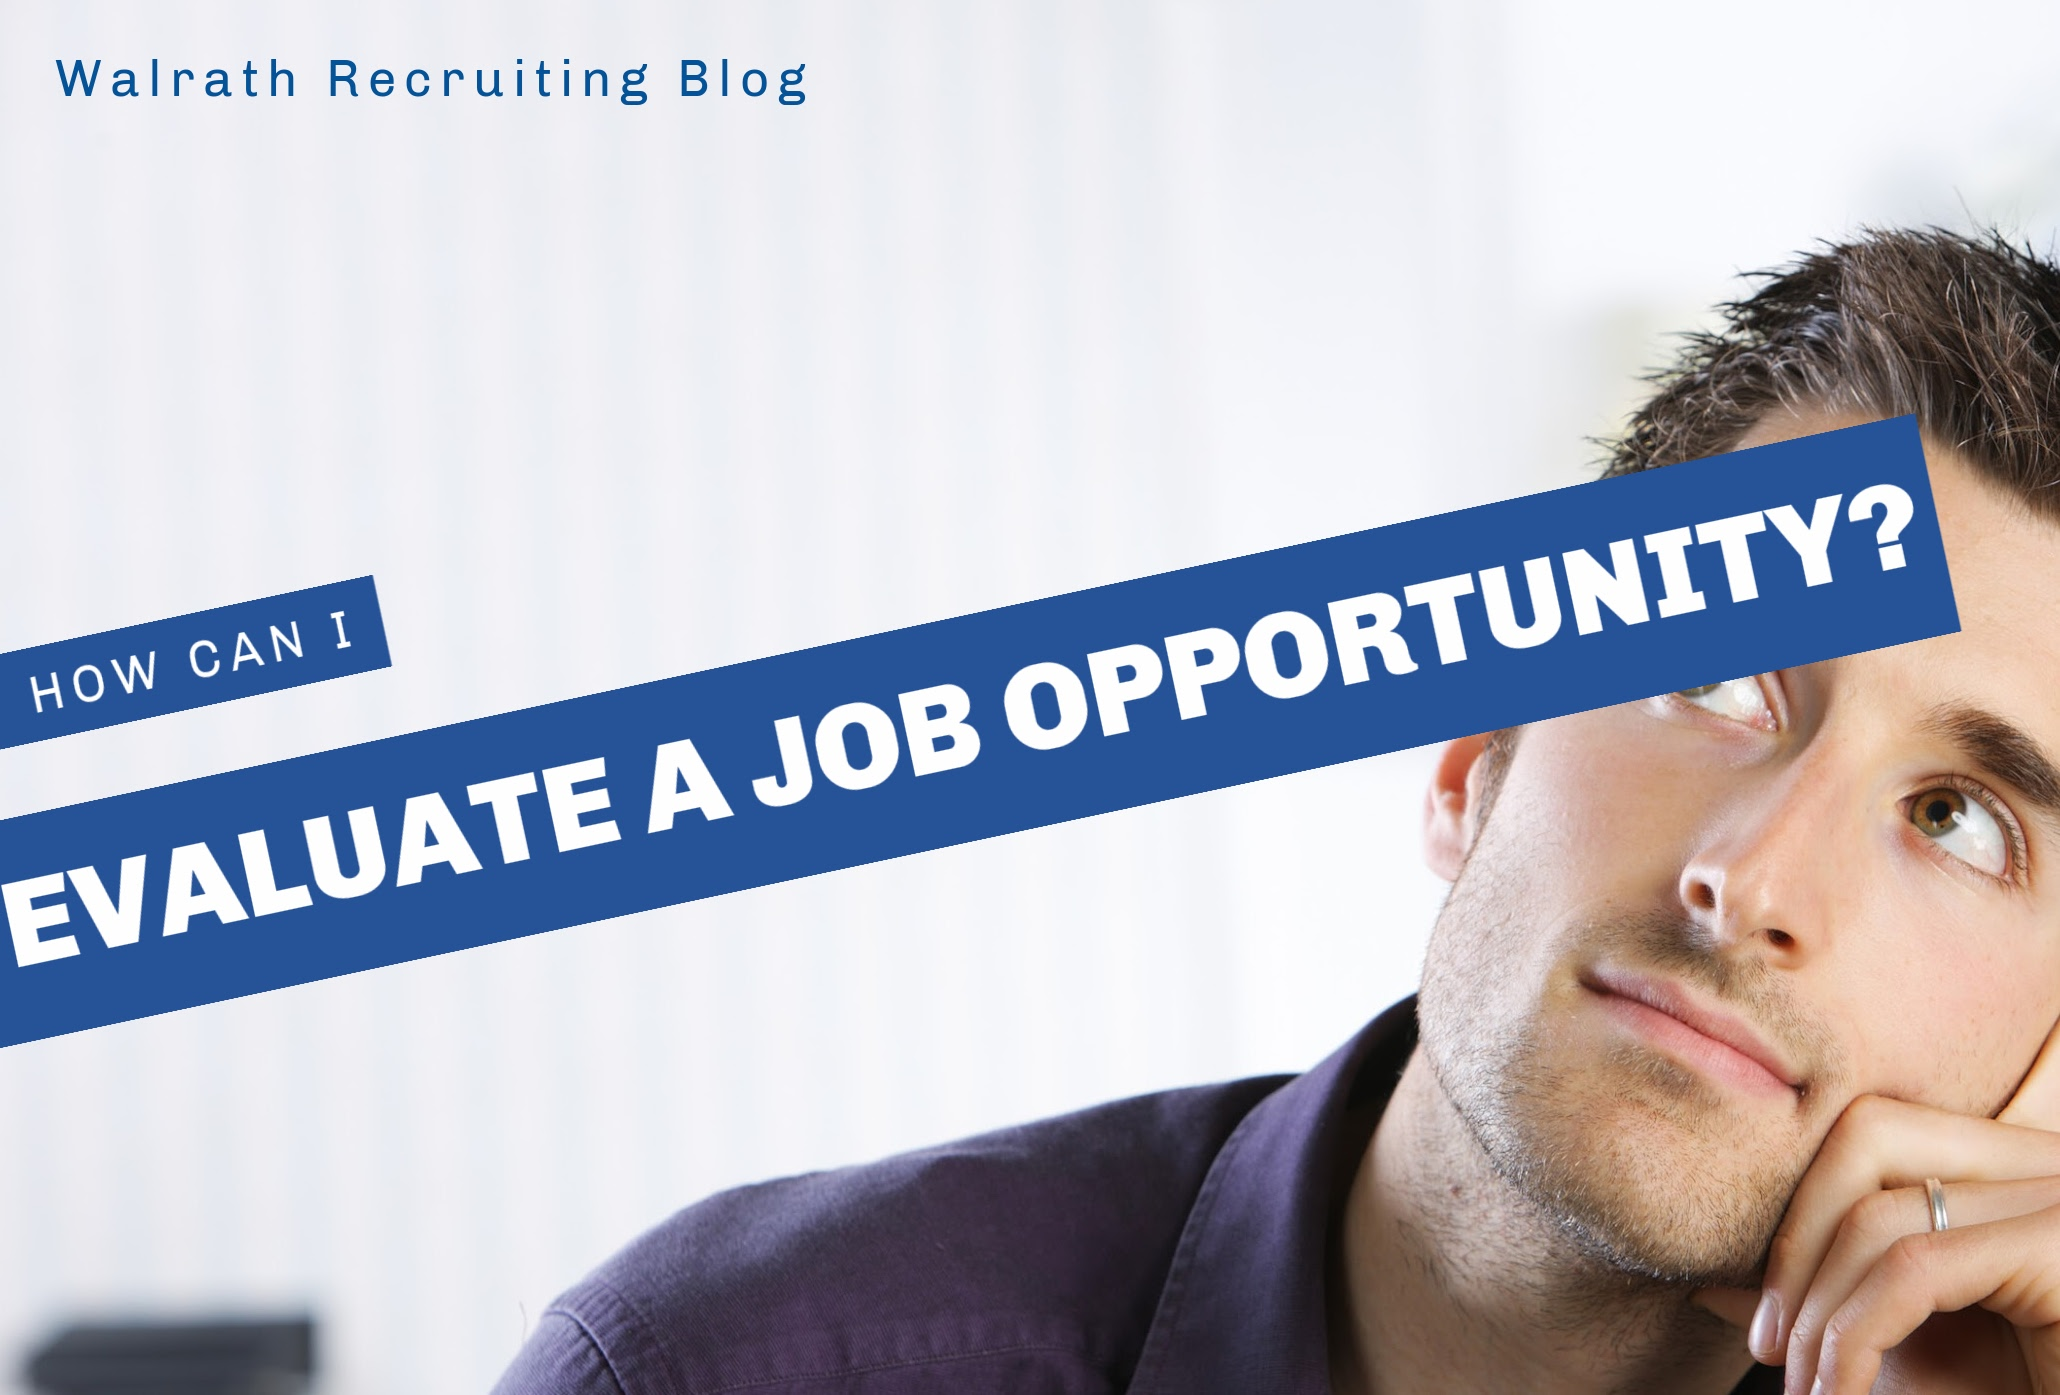 Check out these unique tactics for evaluating job opportunities